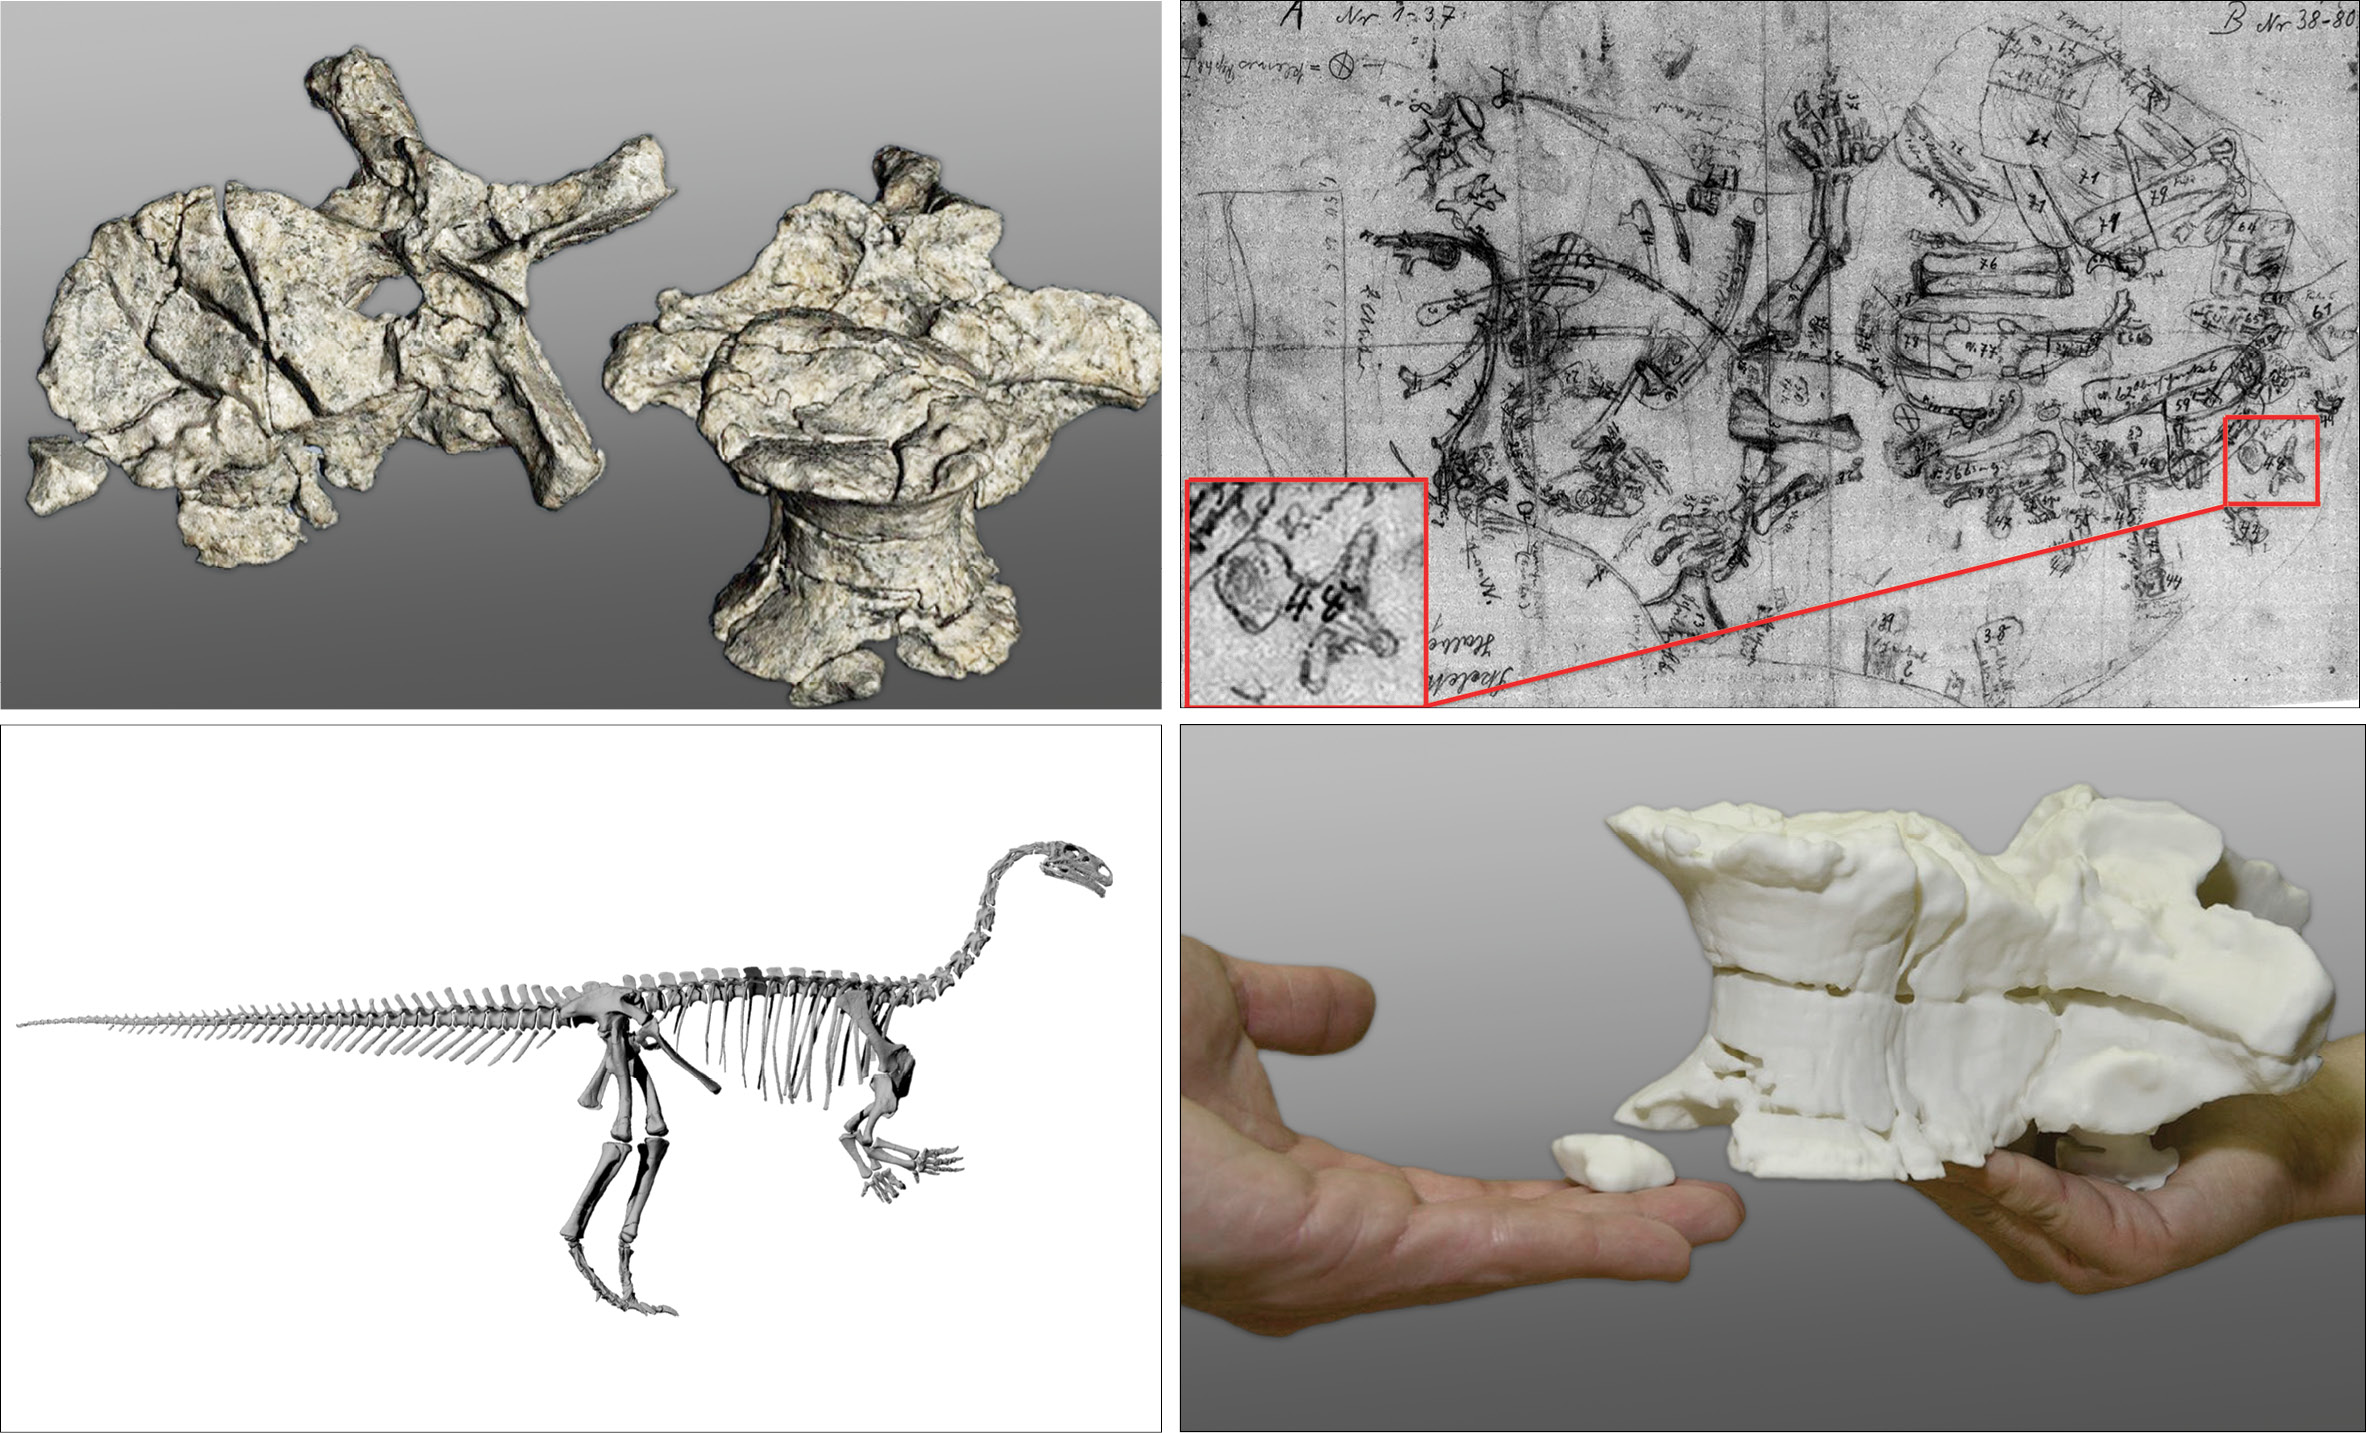 3D Printing Creates Physical Models of Dinosaurs lg